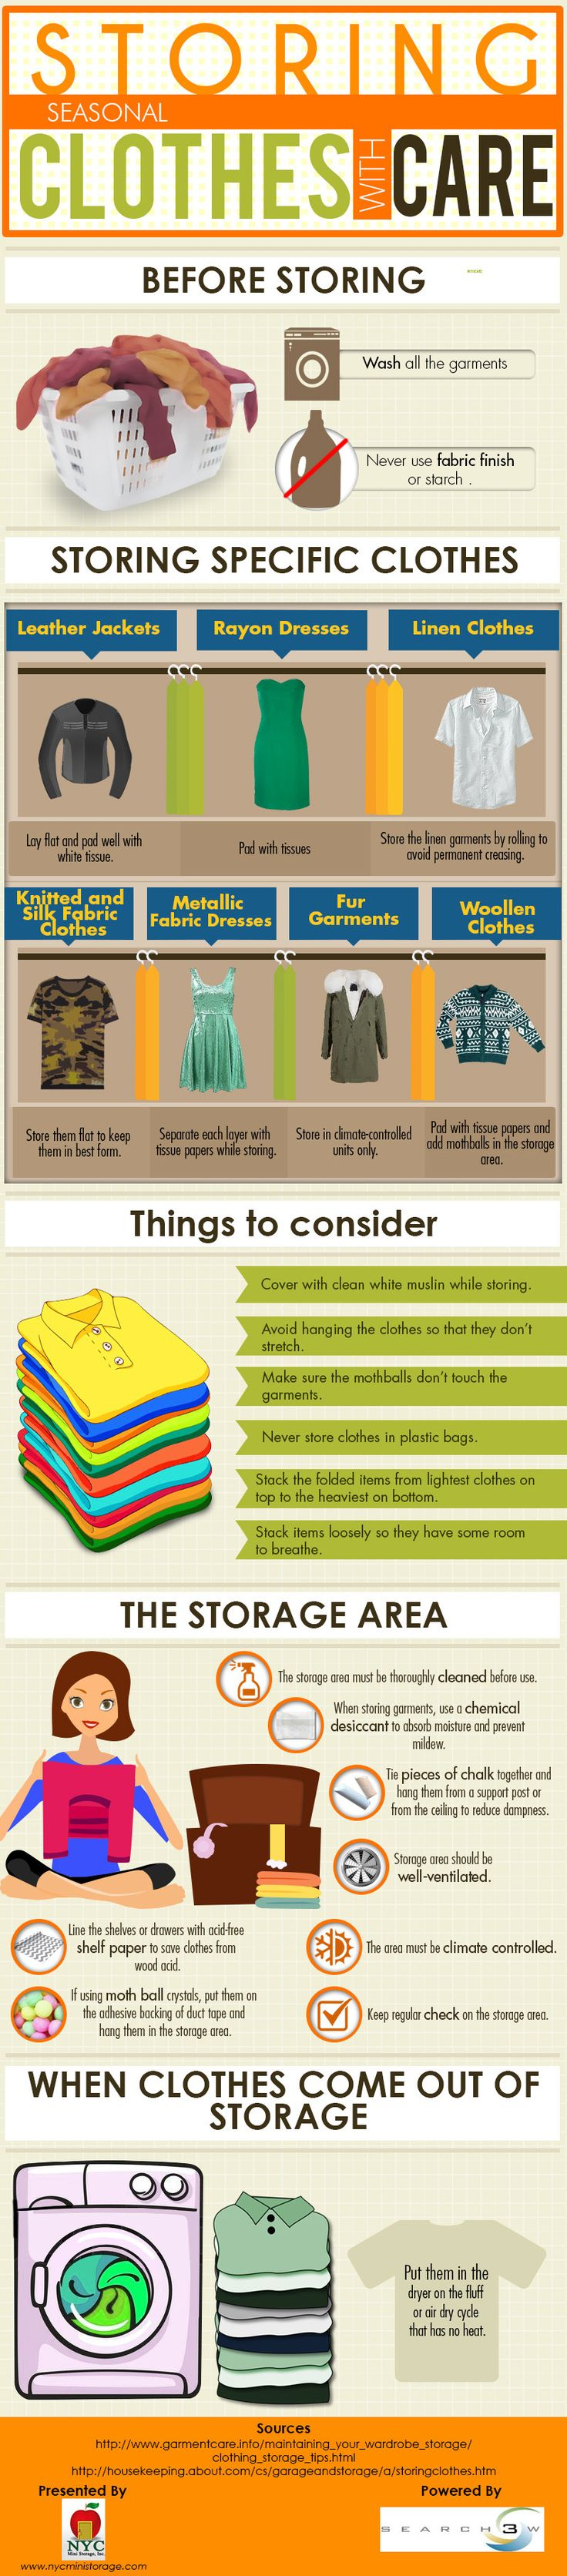 Storing Seasonal Clothes With Care #infographic